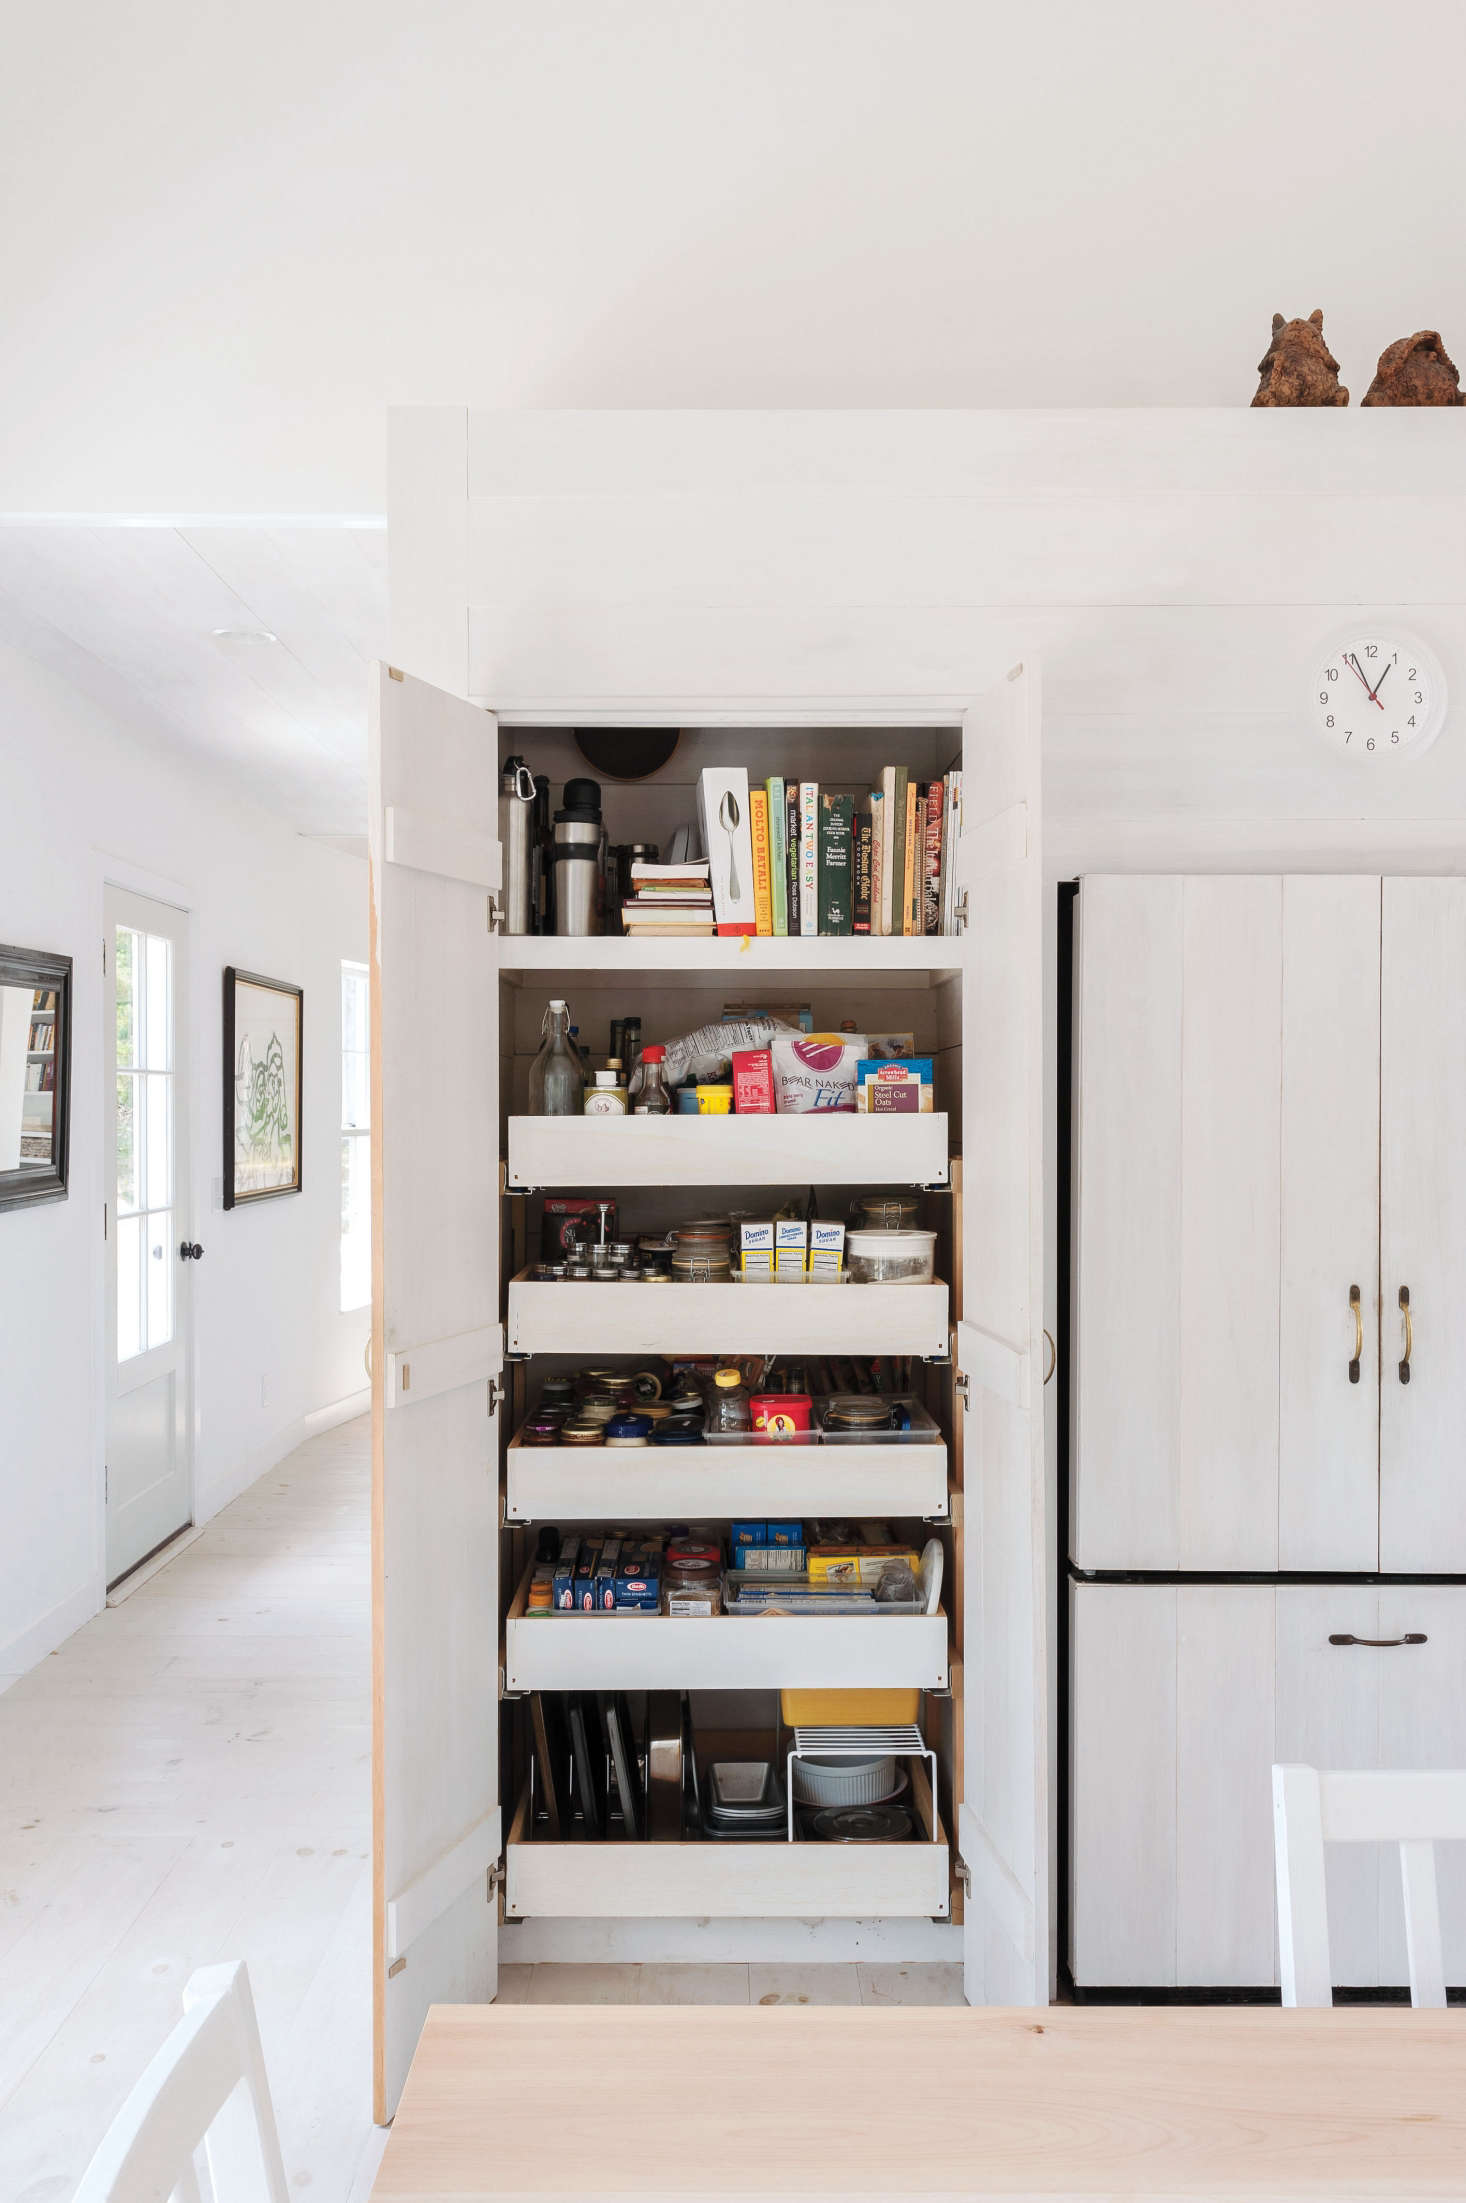 Well-liked A Peek Inside the Pantry: 11 Kitchen Storage Favorites - Remodelista XS02